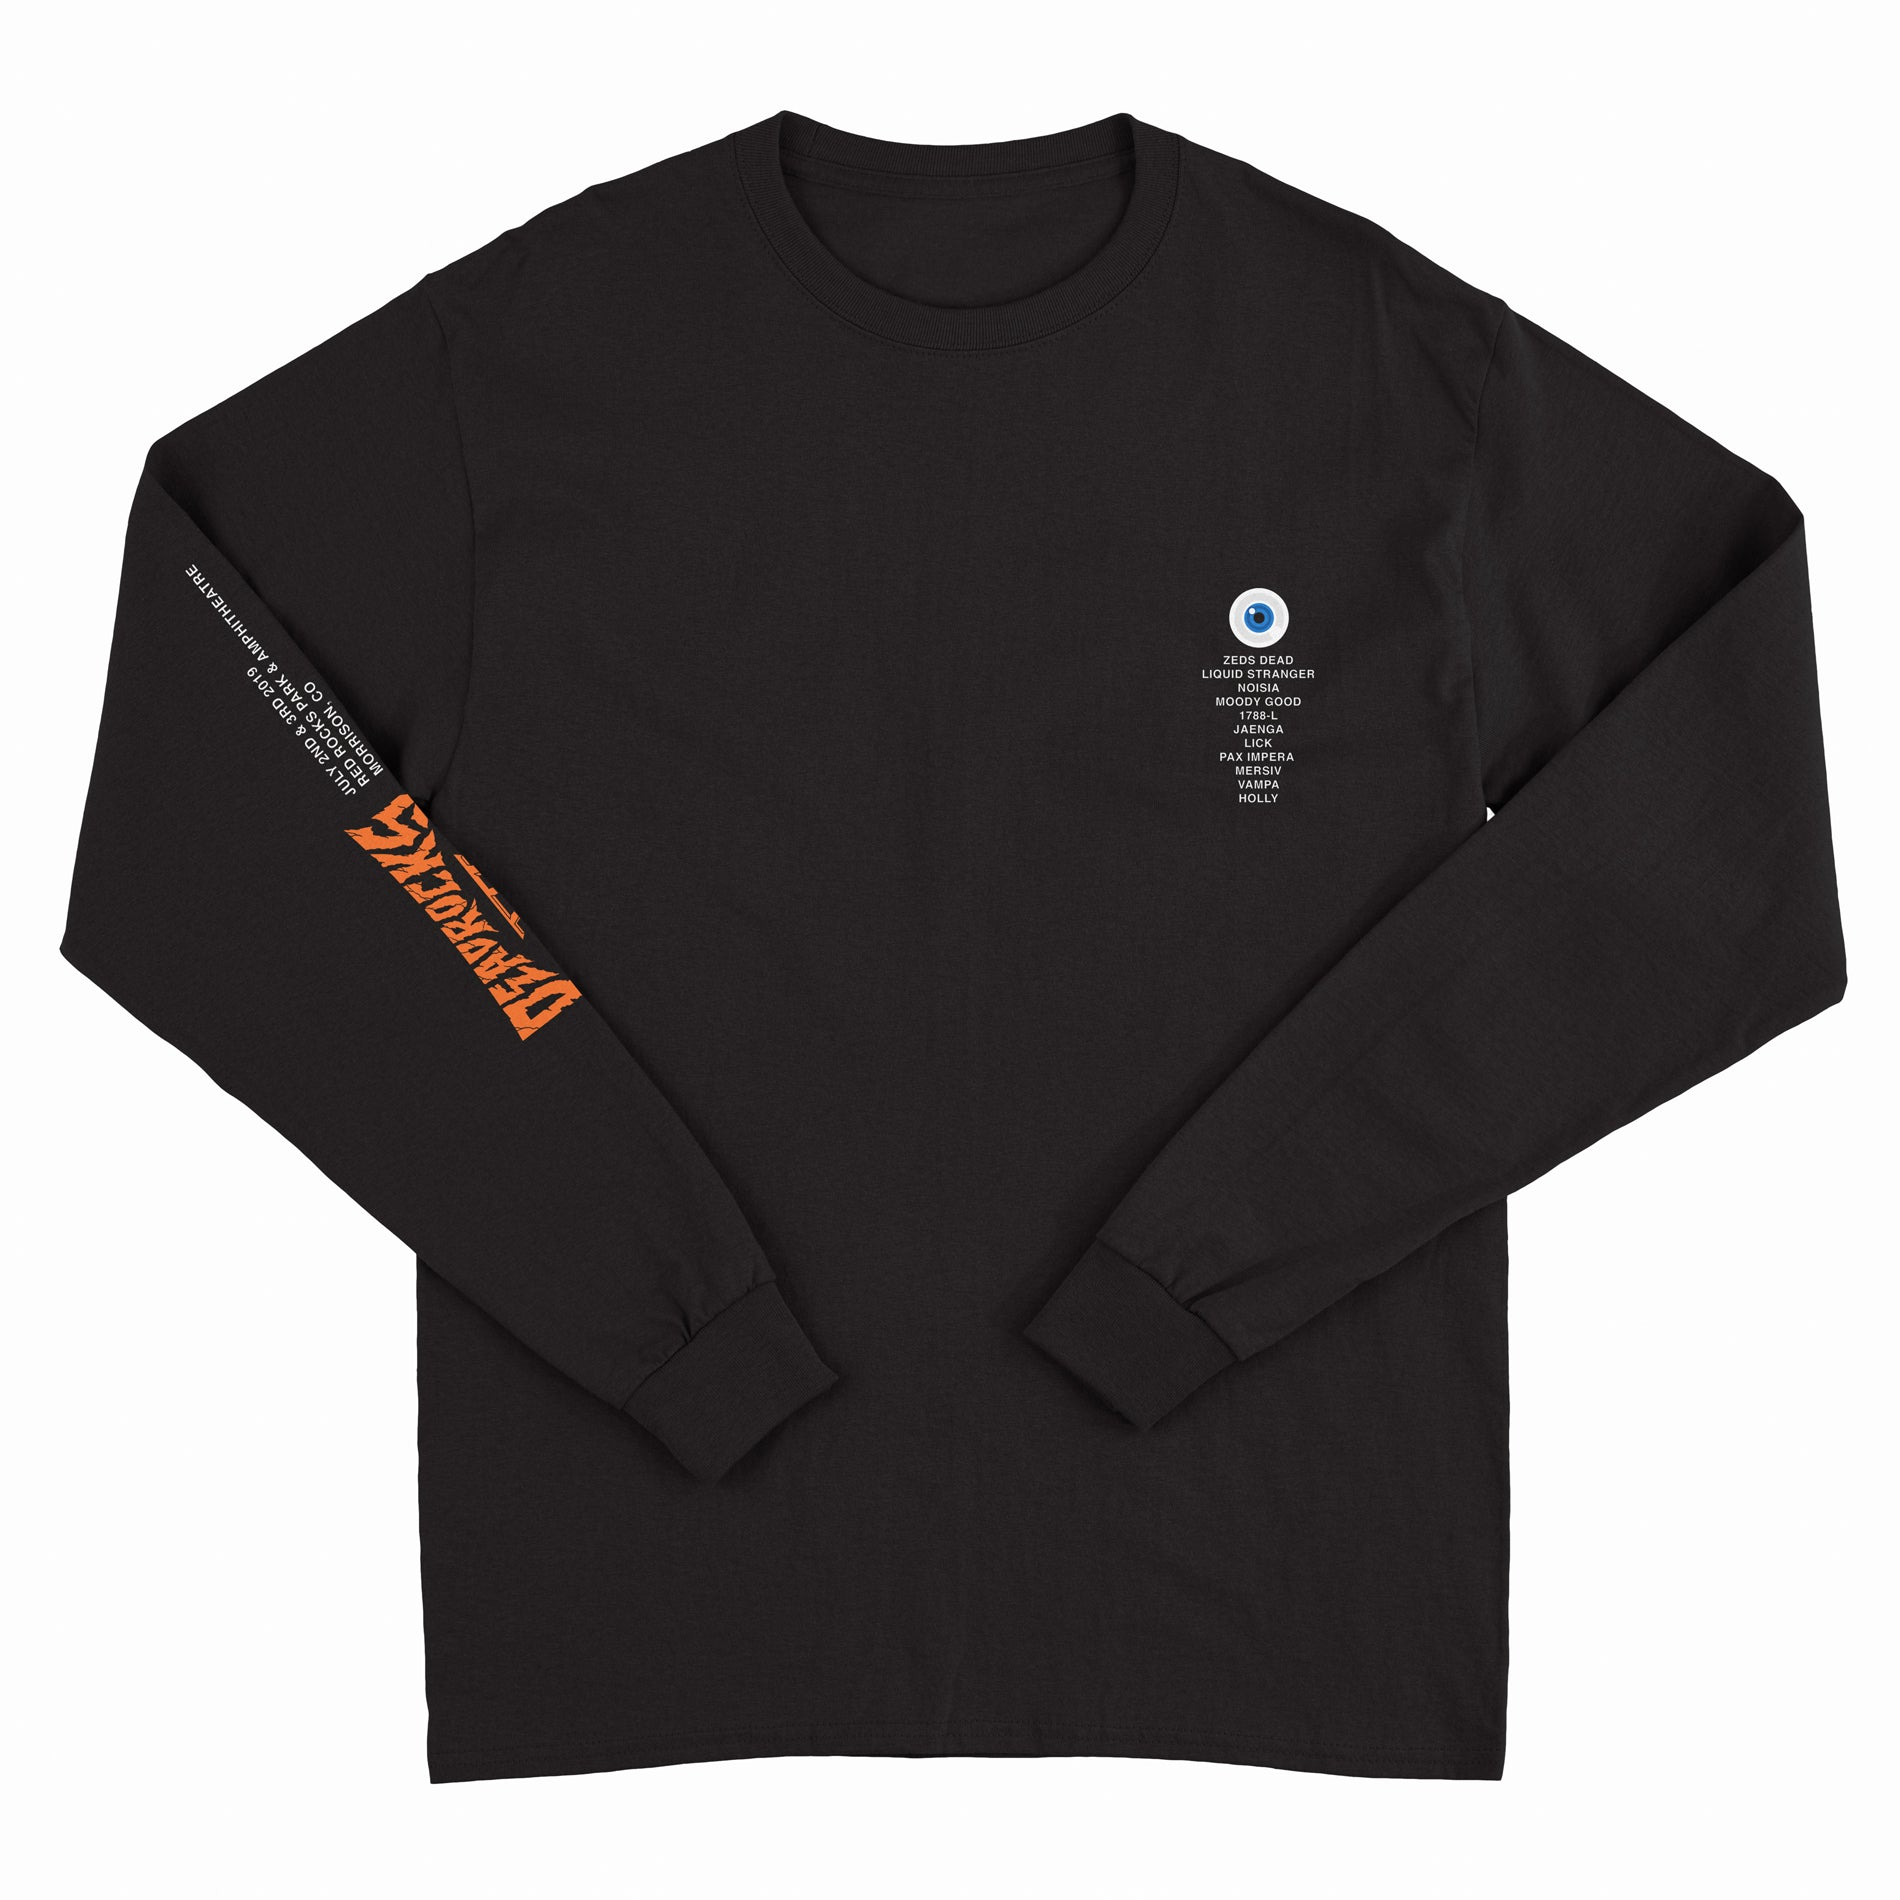 ZD - Deadrocks VI - Eyeball - Black Long Sleeve